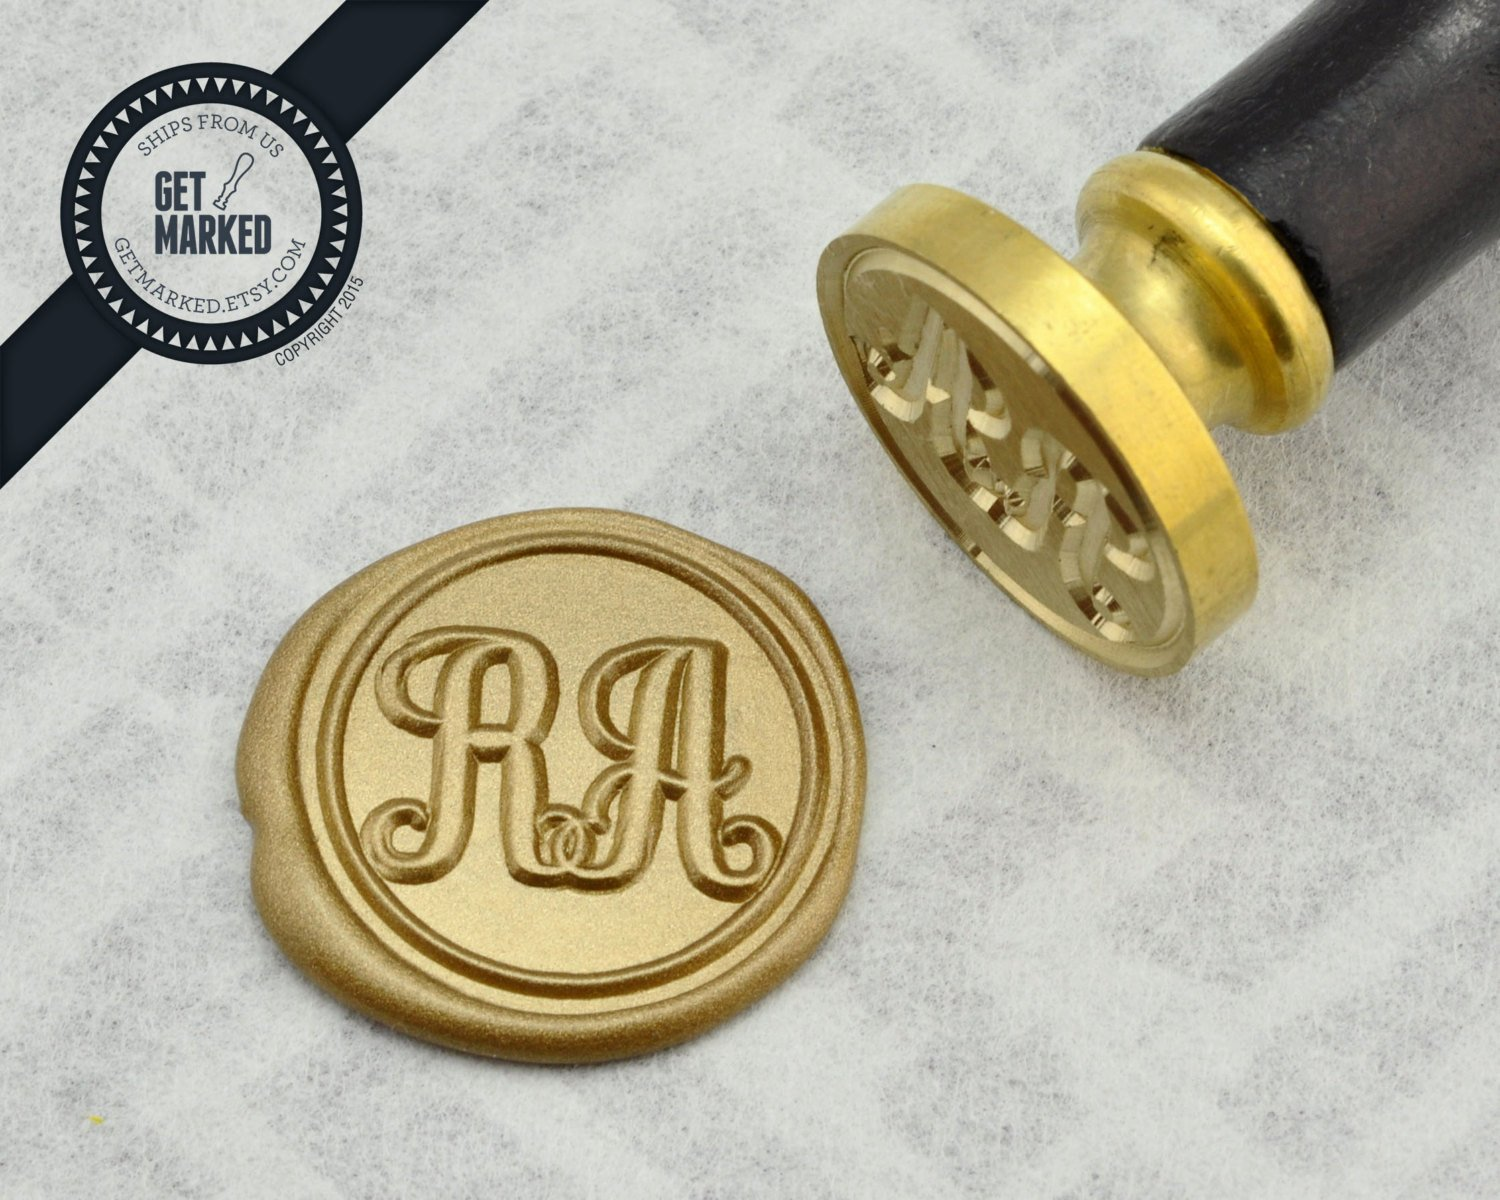 Monogram order form Template Awesome Monogram Customized Wax Seal Stamp Template by Get Marked